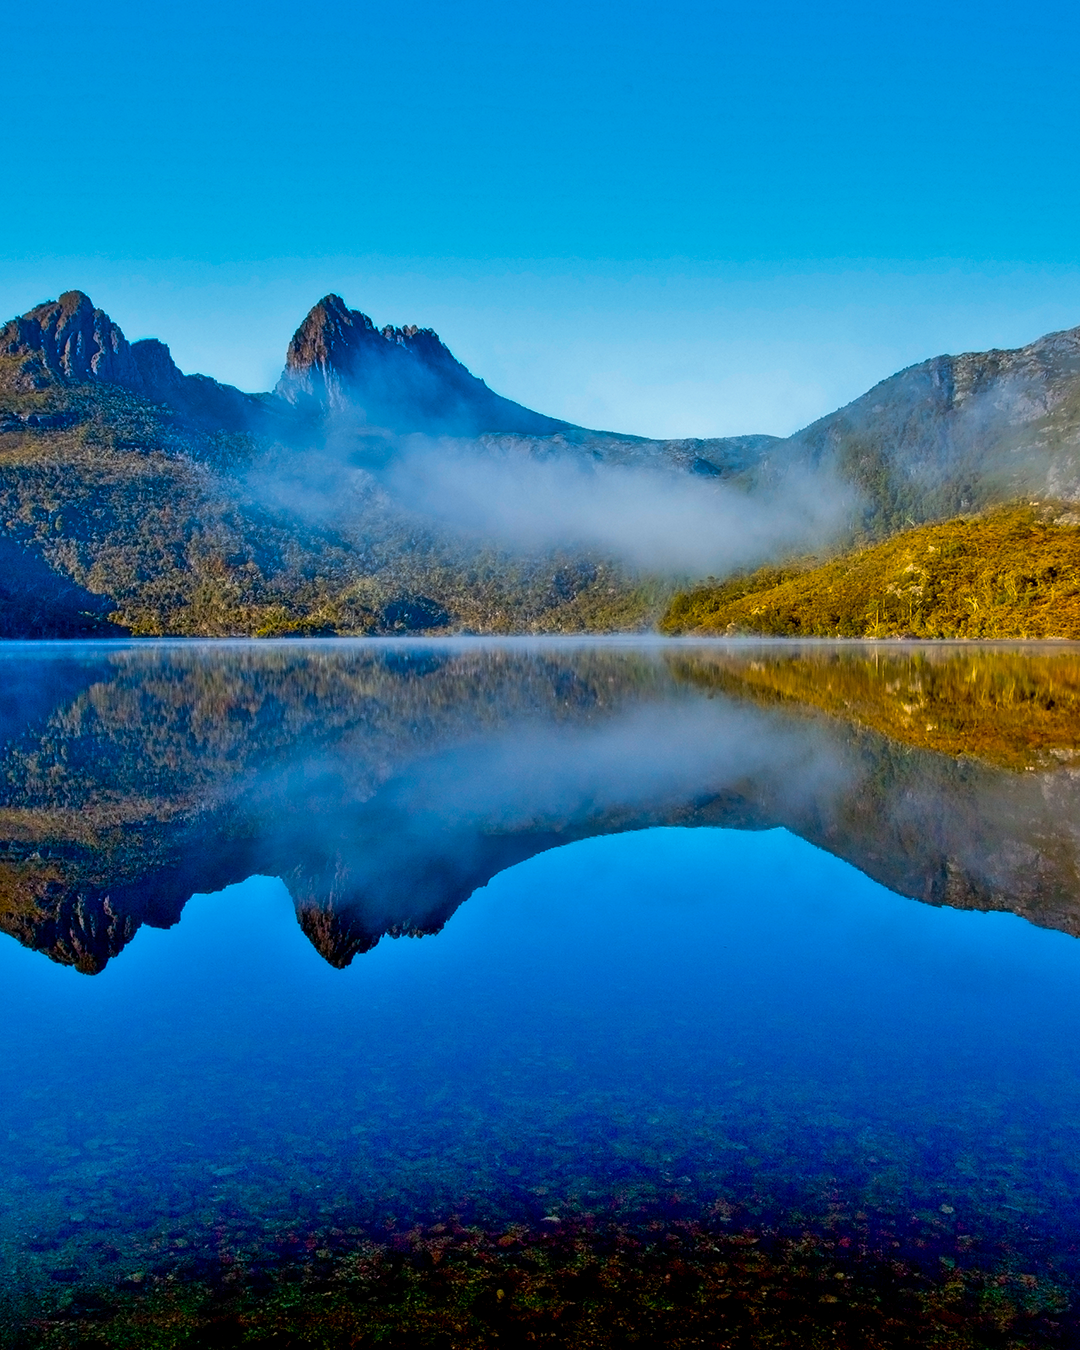 Cradle Mountain looms above a lake, in which it's reflection shows in the glass-like lake.